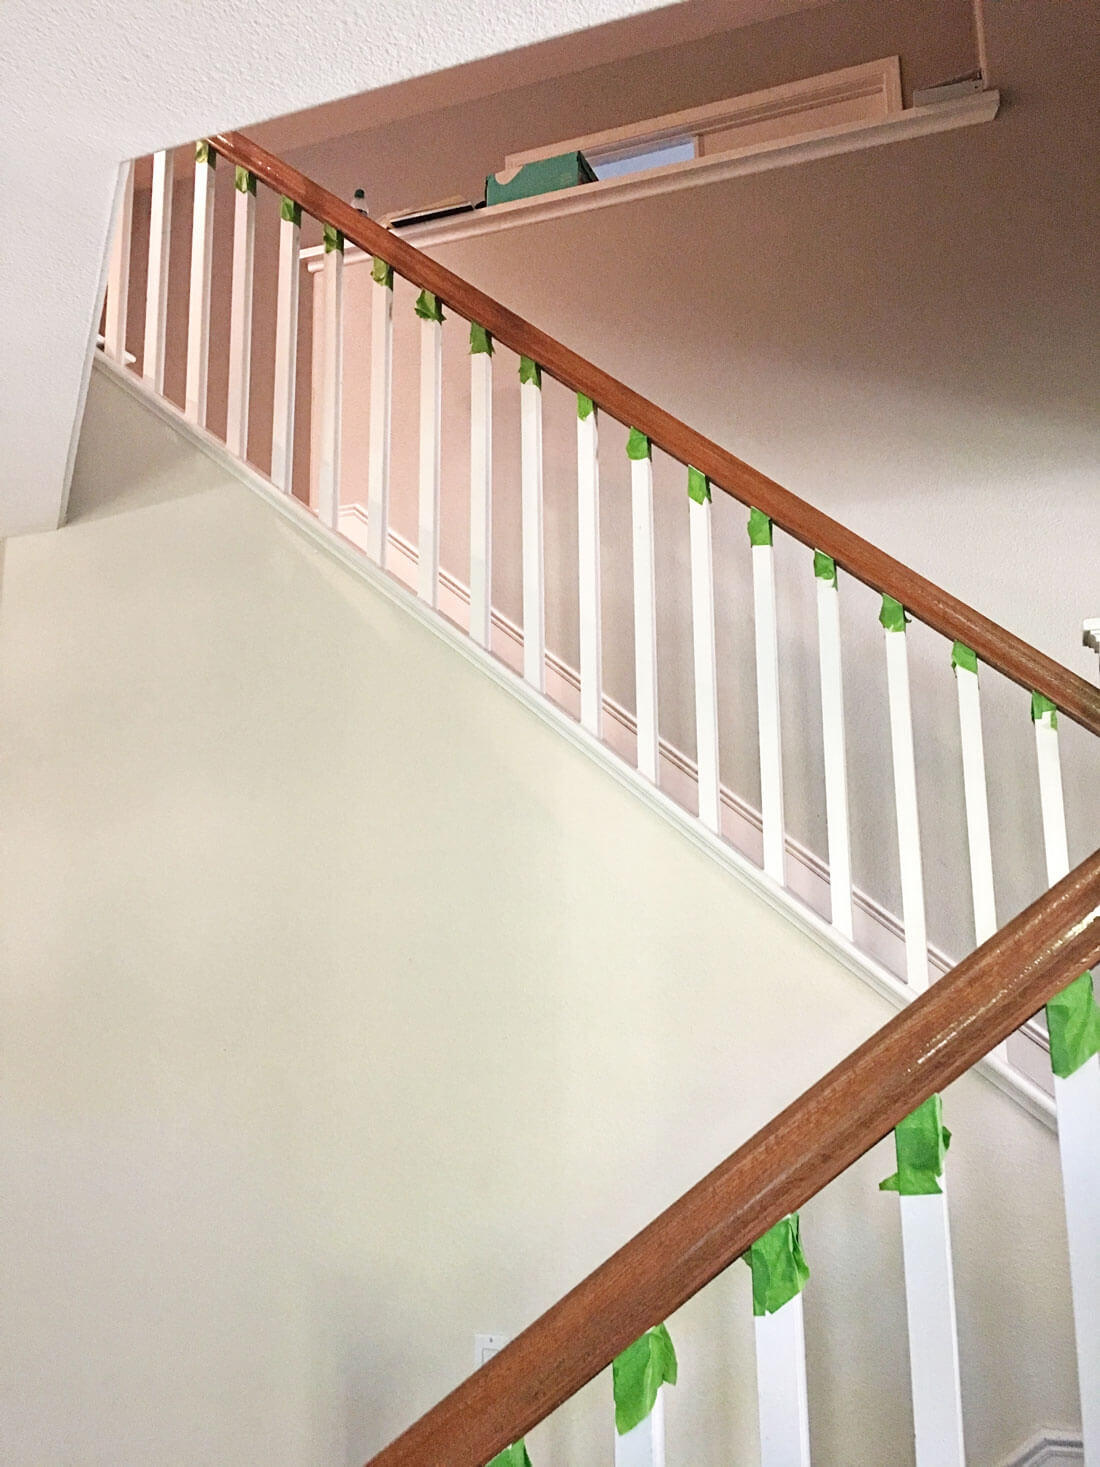 How To Paint Your Stair Railing And Banister Black From 30Daysblog | Wooden Banisters And Railings | Stairwell | Small | Industrial | Balcony | Dark Walnut